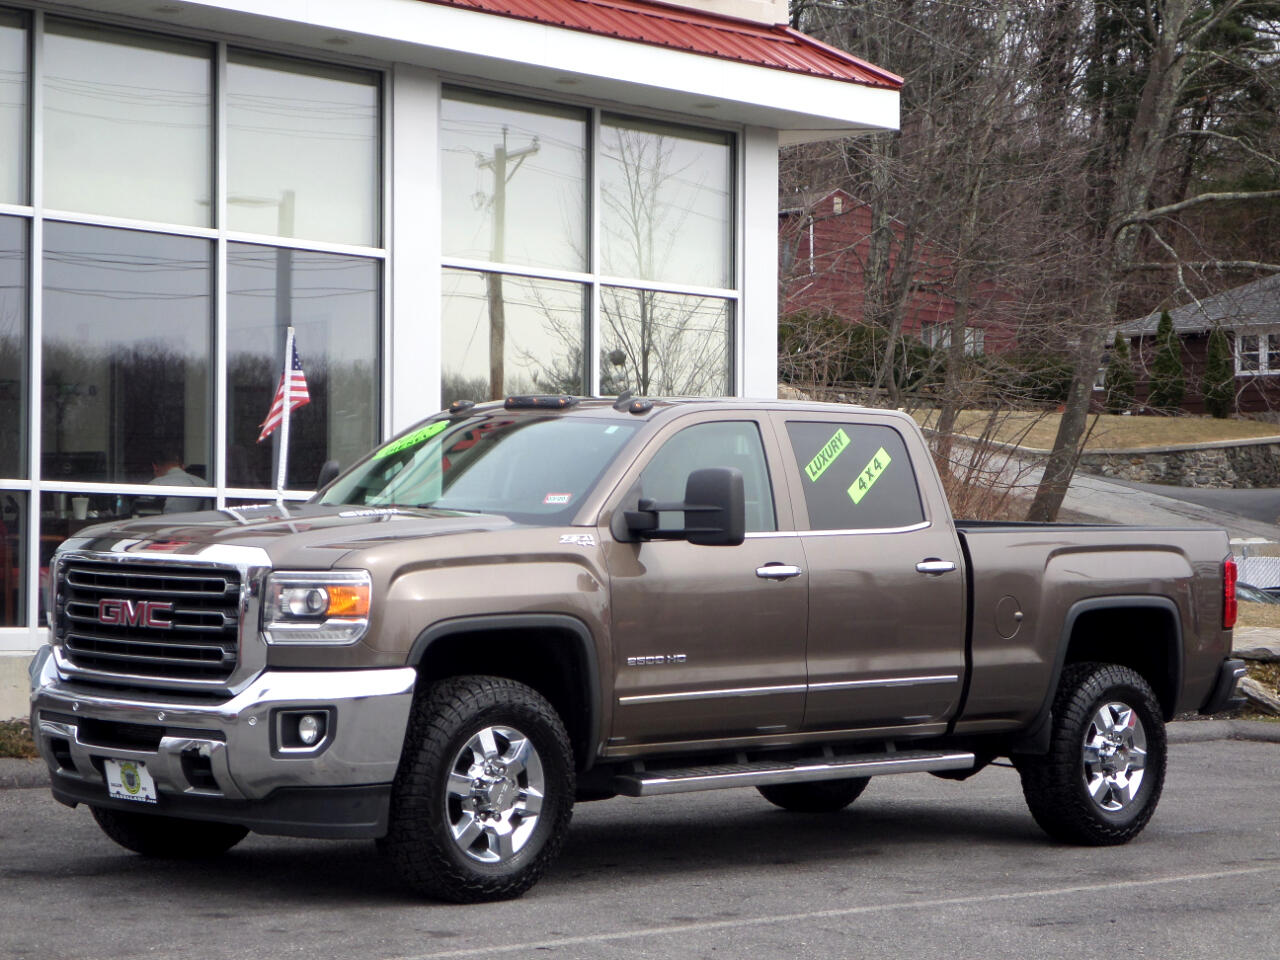 2015 GMC Sierra 2500HD SLT DURAMAX DIESEL CREW CAB LOADED ALL THE OPTIONS